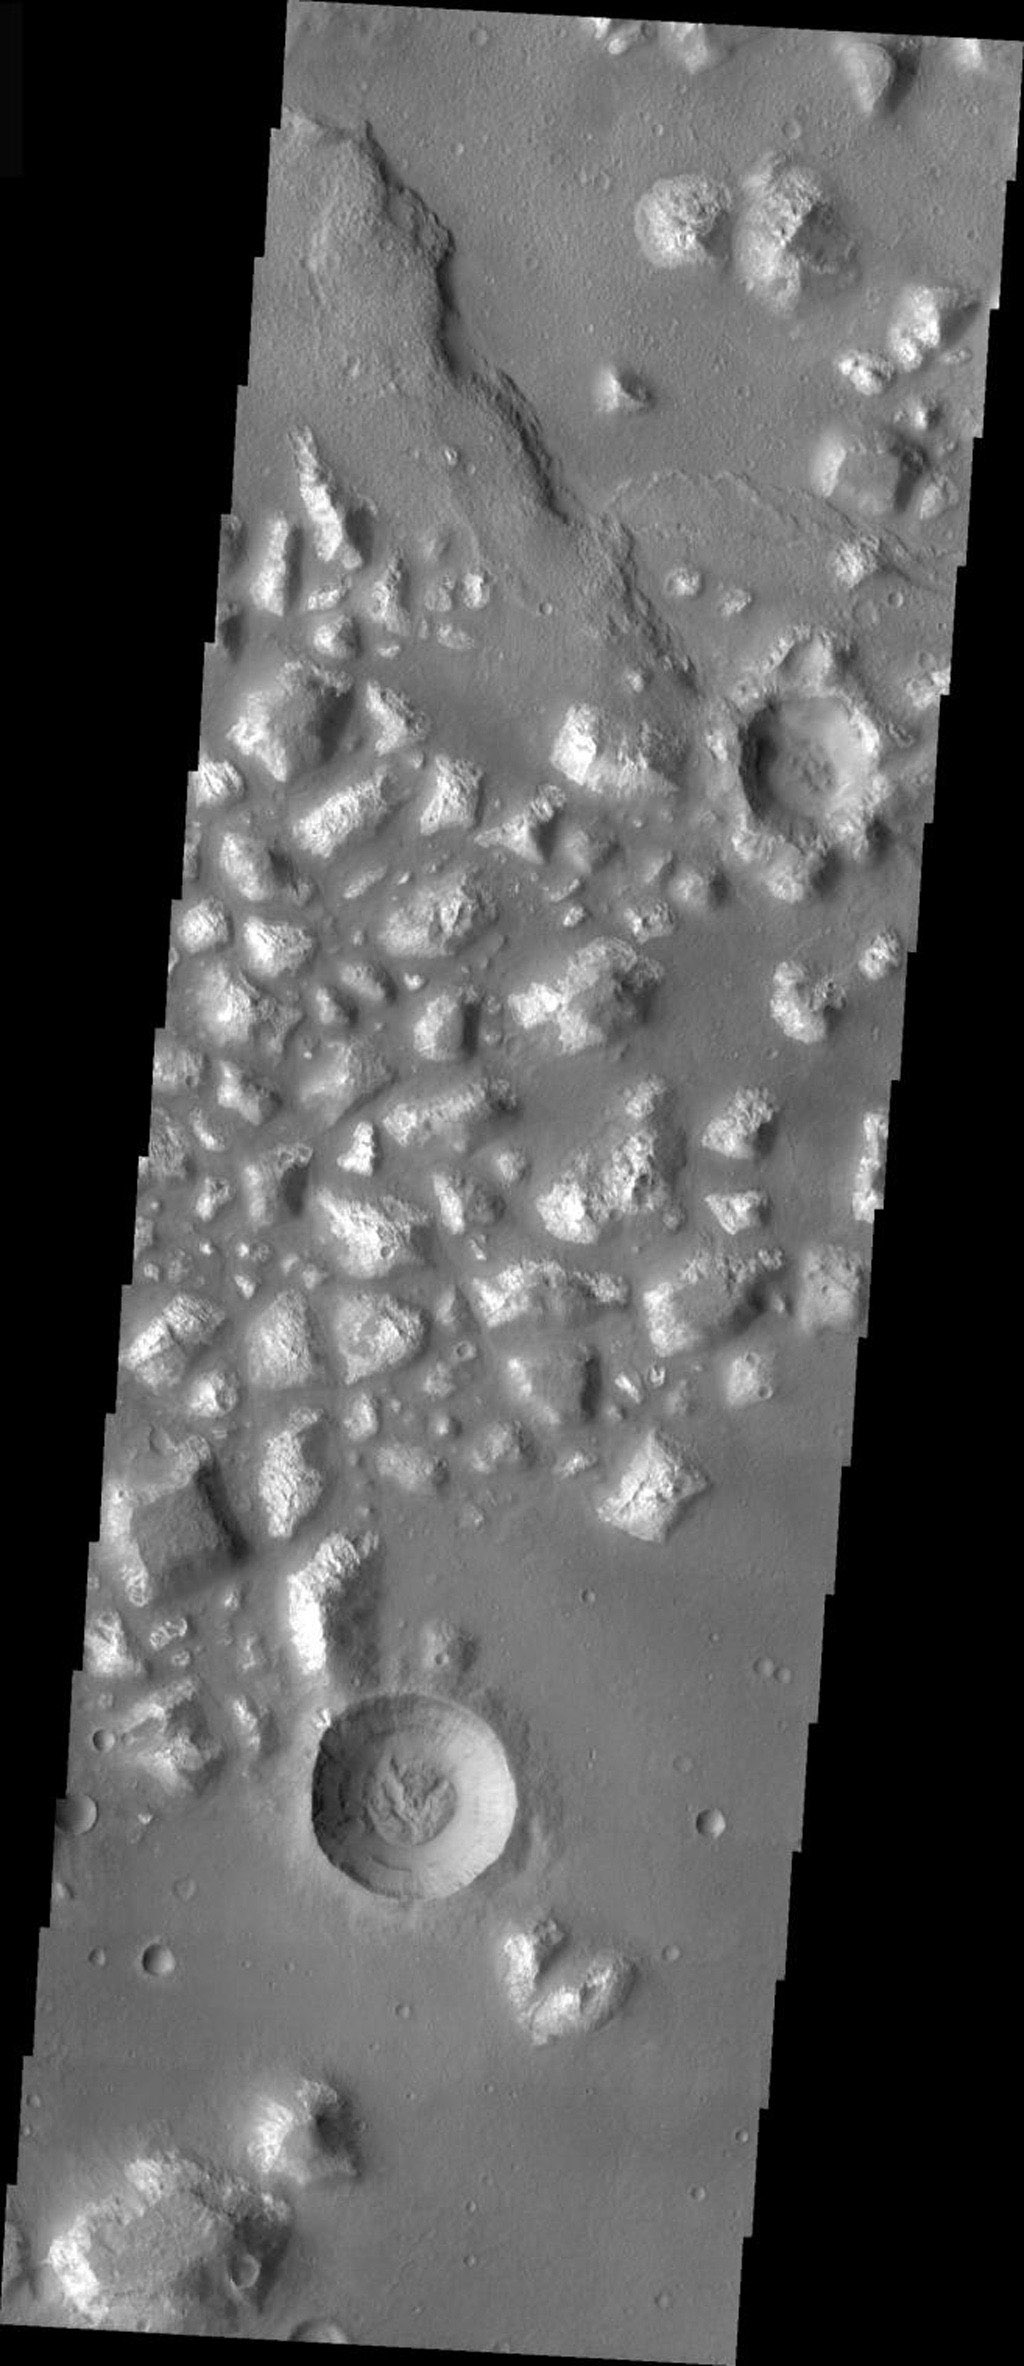 This image from NASA's Mars Odyssey is of a crater on Mars, located in Mare Chromium, showing evidence of exterior modification, with little interior modification. While the rim is still visible, the ejecta blanket has been removed or covered.